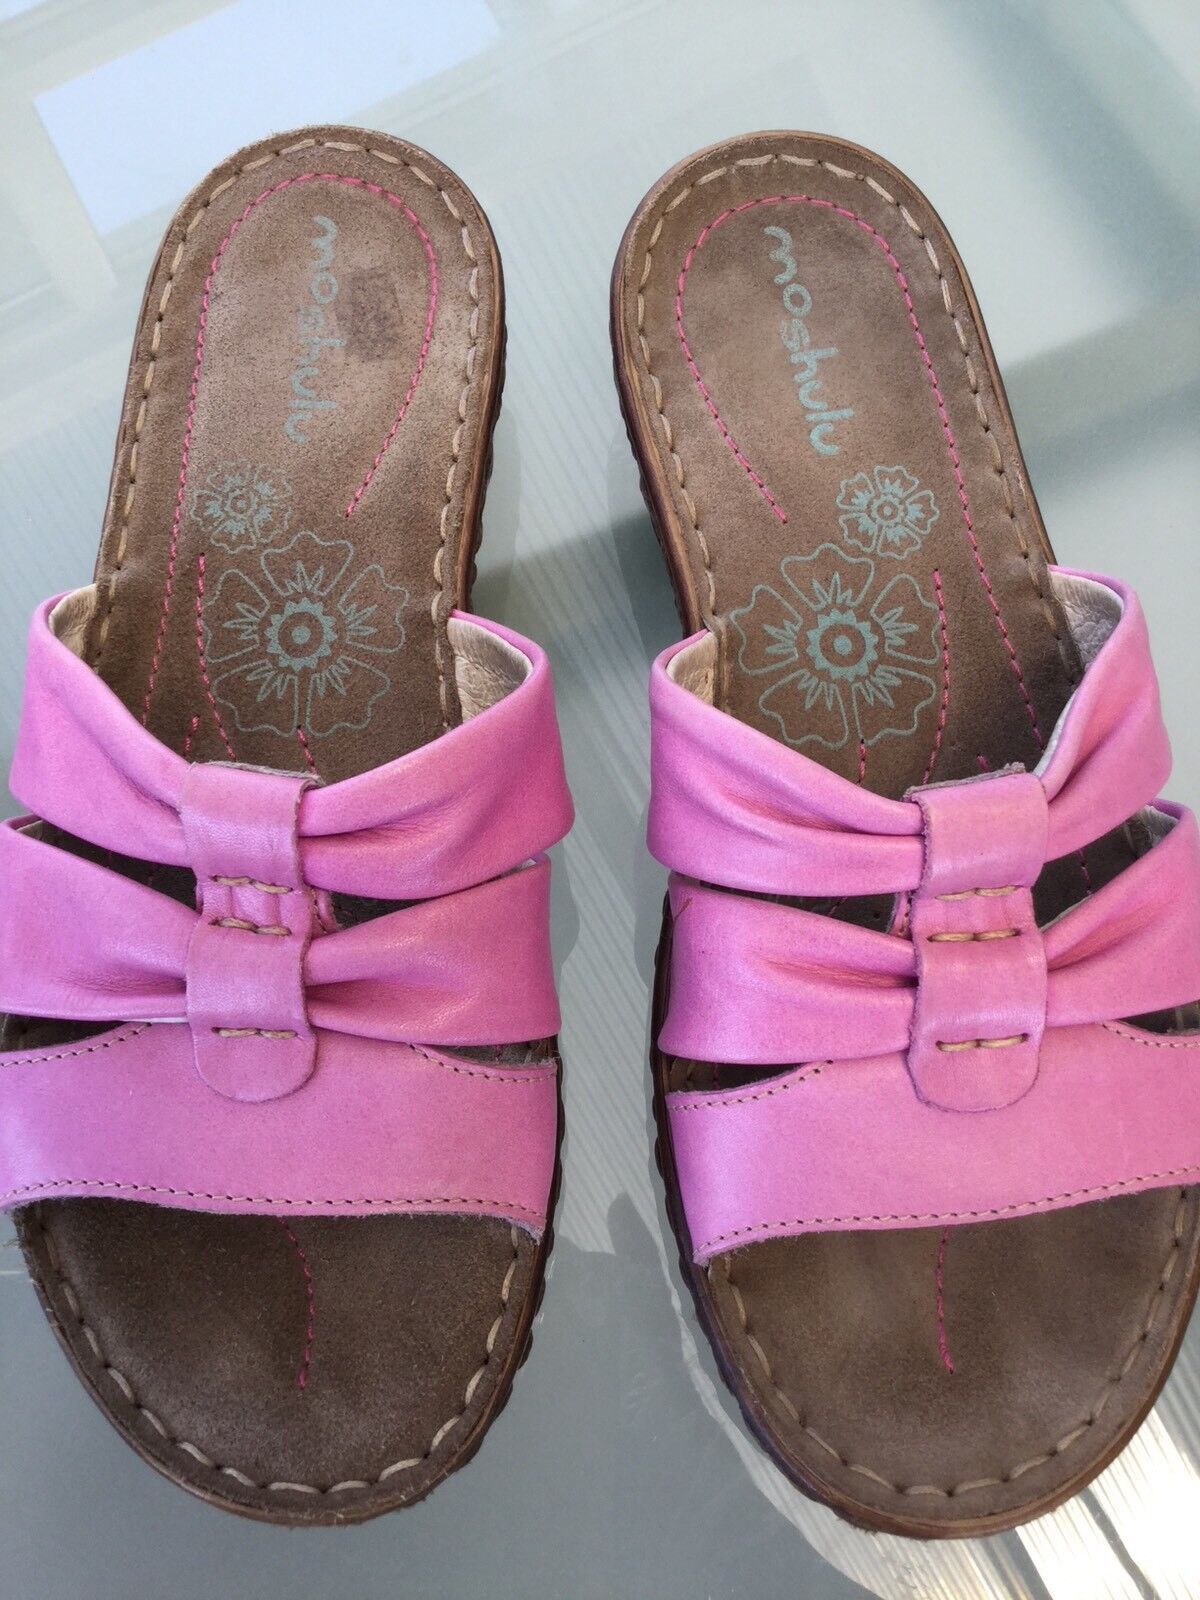 Moshulu Leather Shoes Pink Slip Ons Cushion Inner Sole Size 37